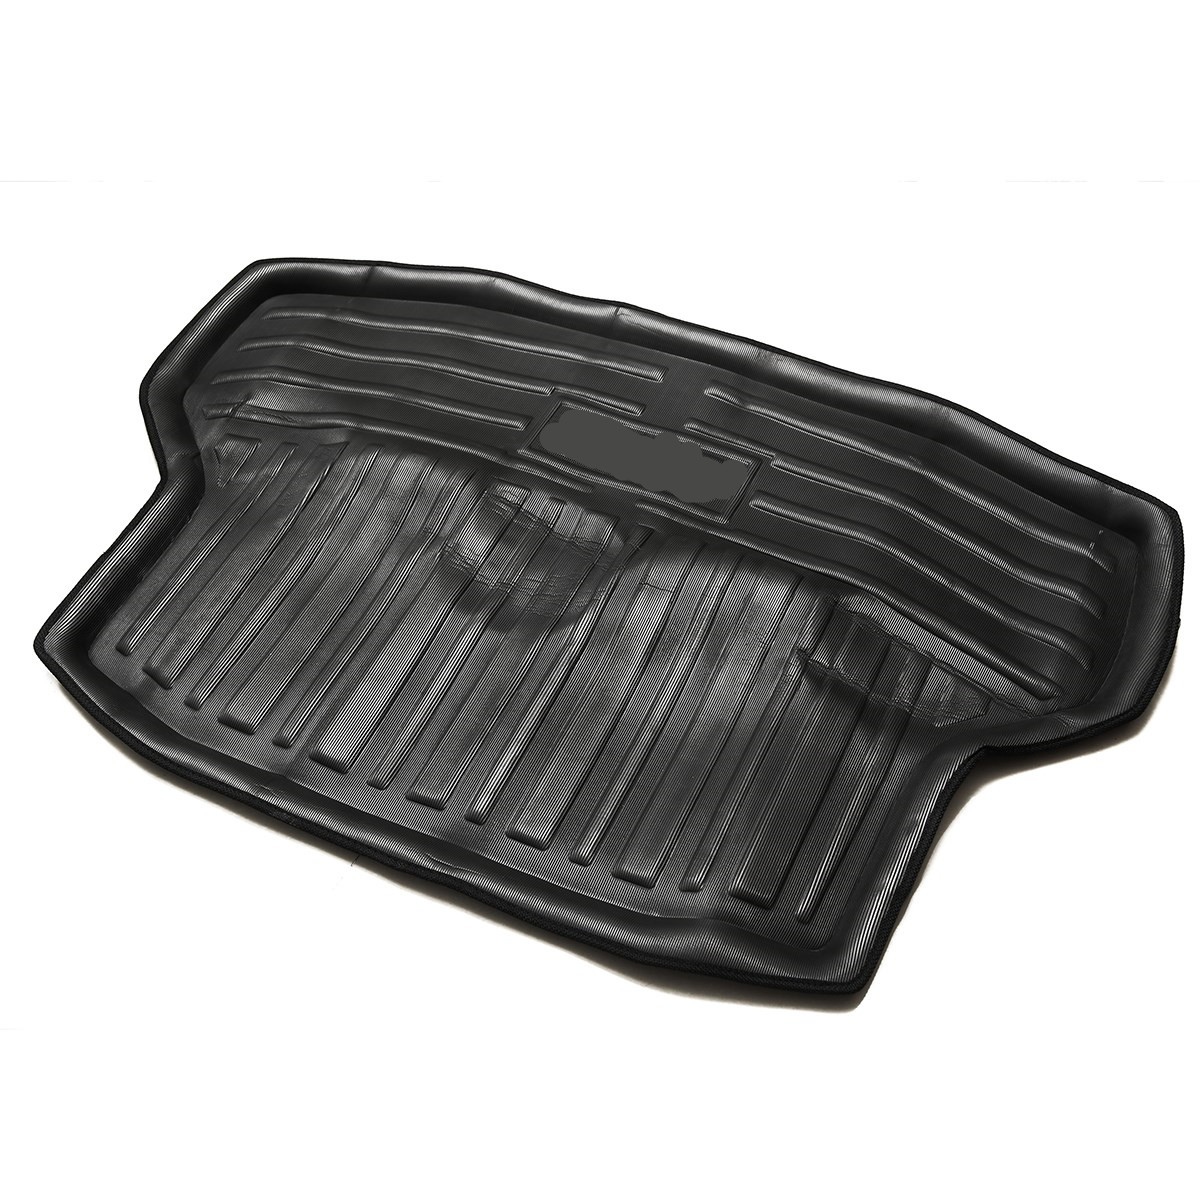 1x New Waterproof Car Rear Trunk Boot Mat Cargo Liner Floor Tray For Honda Civic Sedan 2016 2017 2018 Auto Accessories With Logo